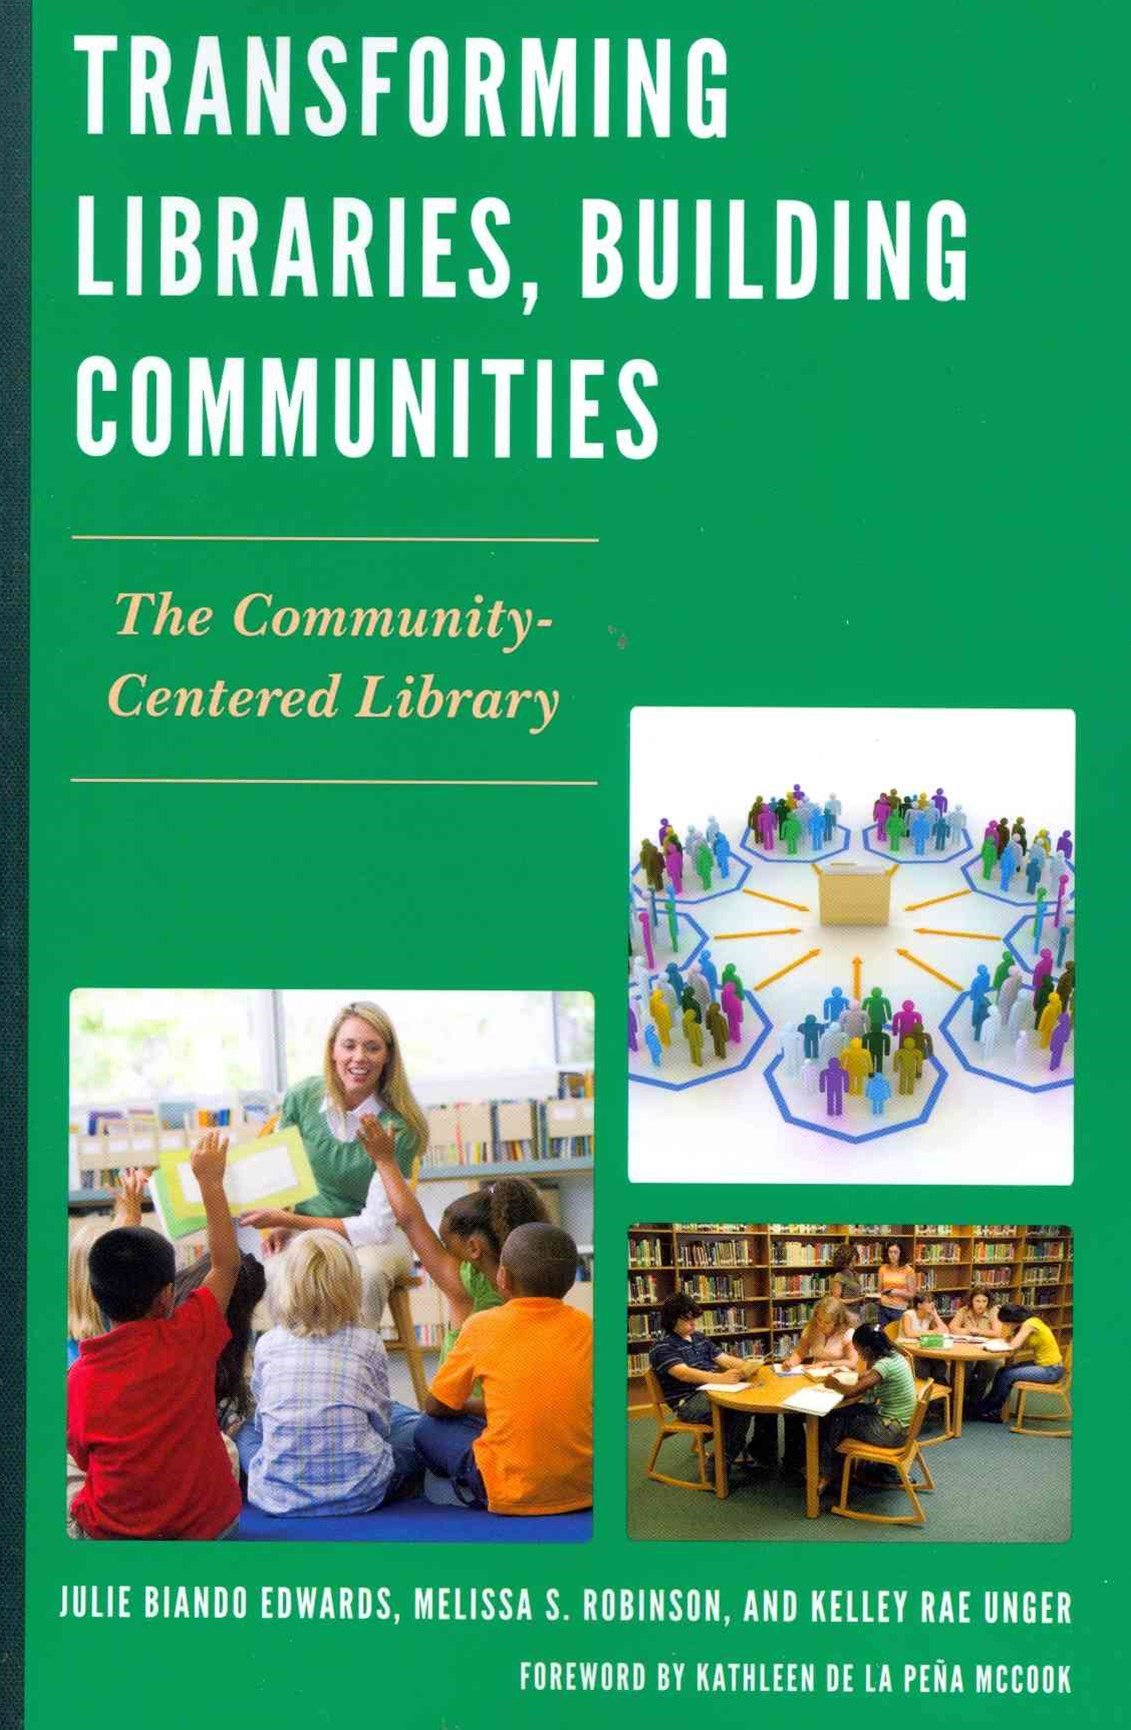 Transforming Libraries, Building Communities